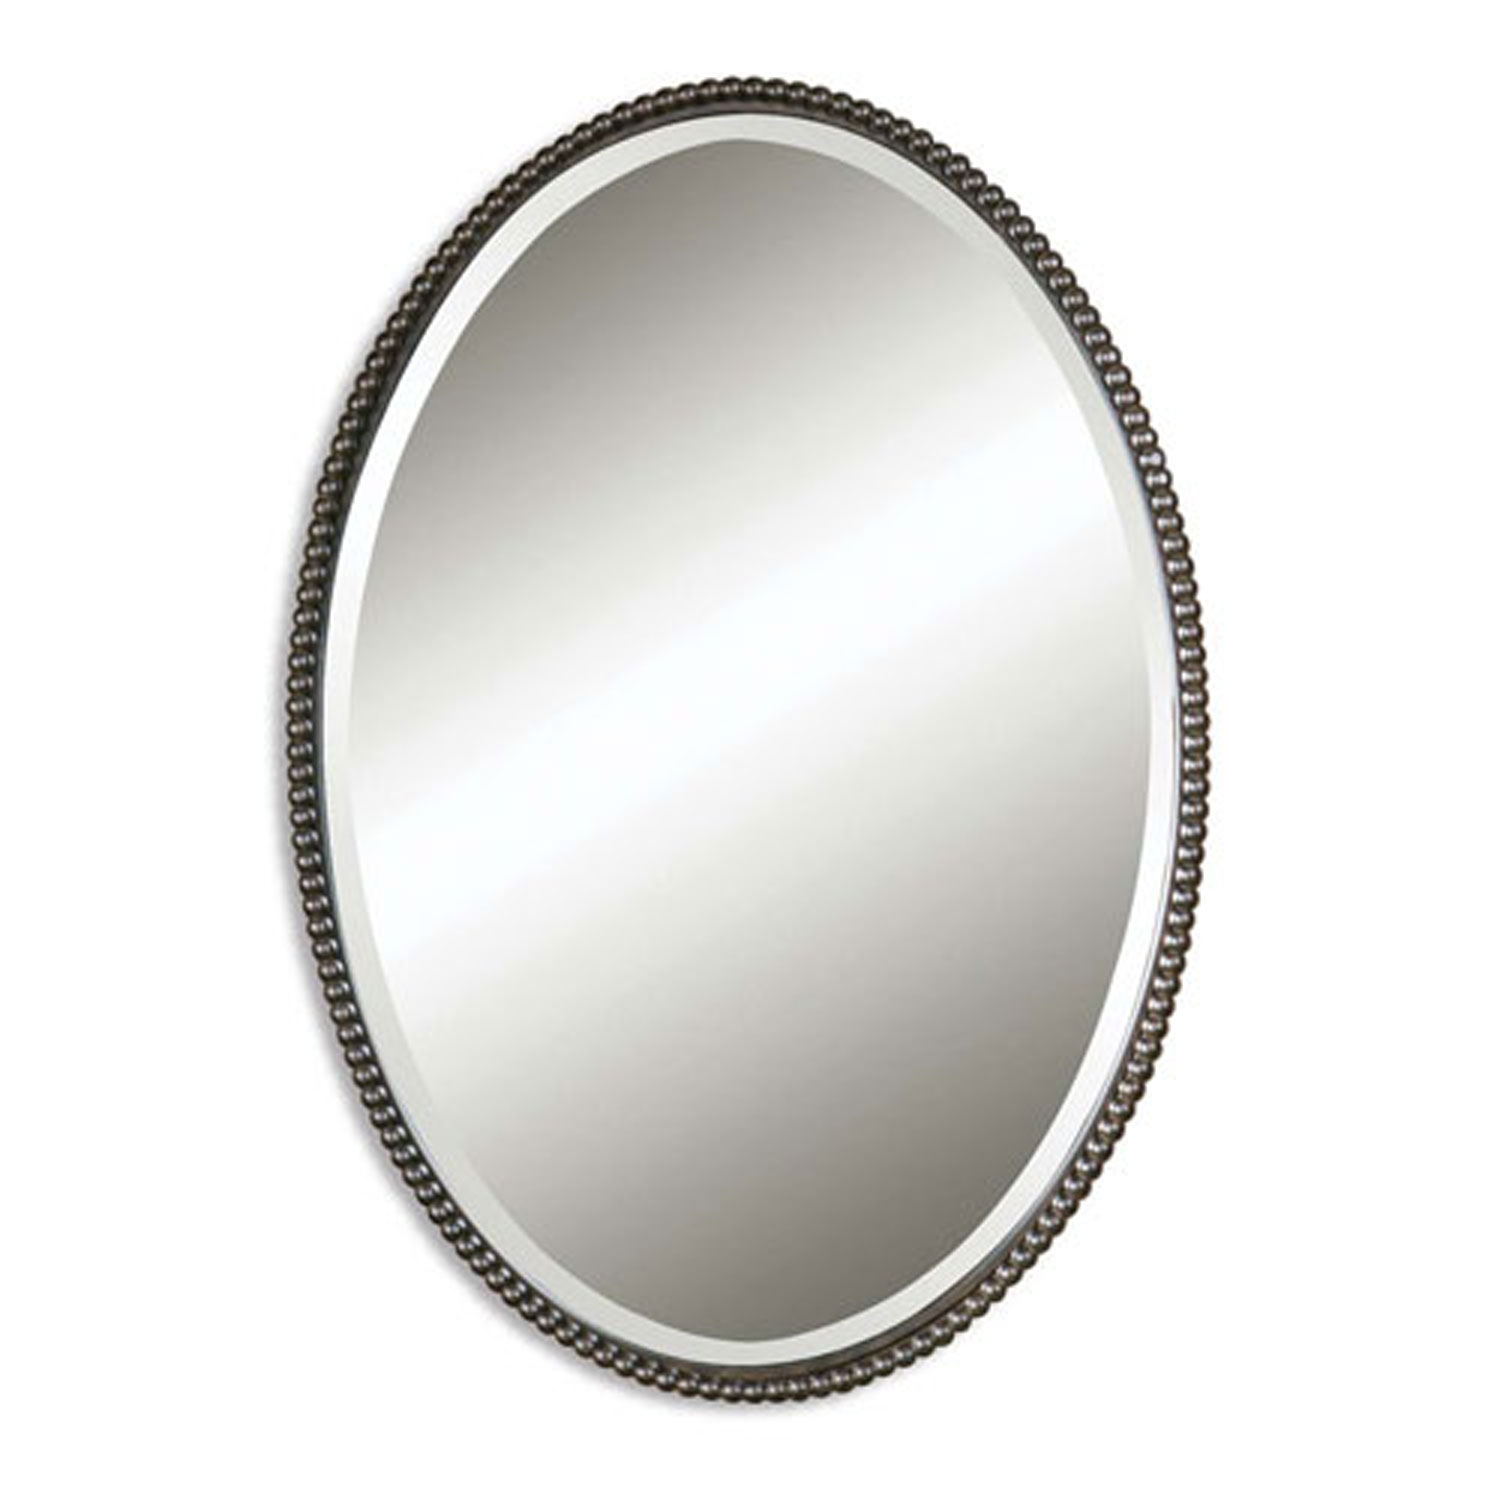 15 Collection of Oval Mirrors